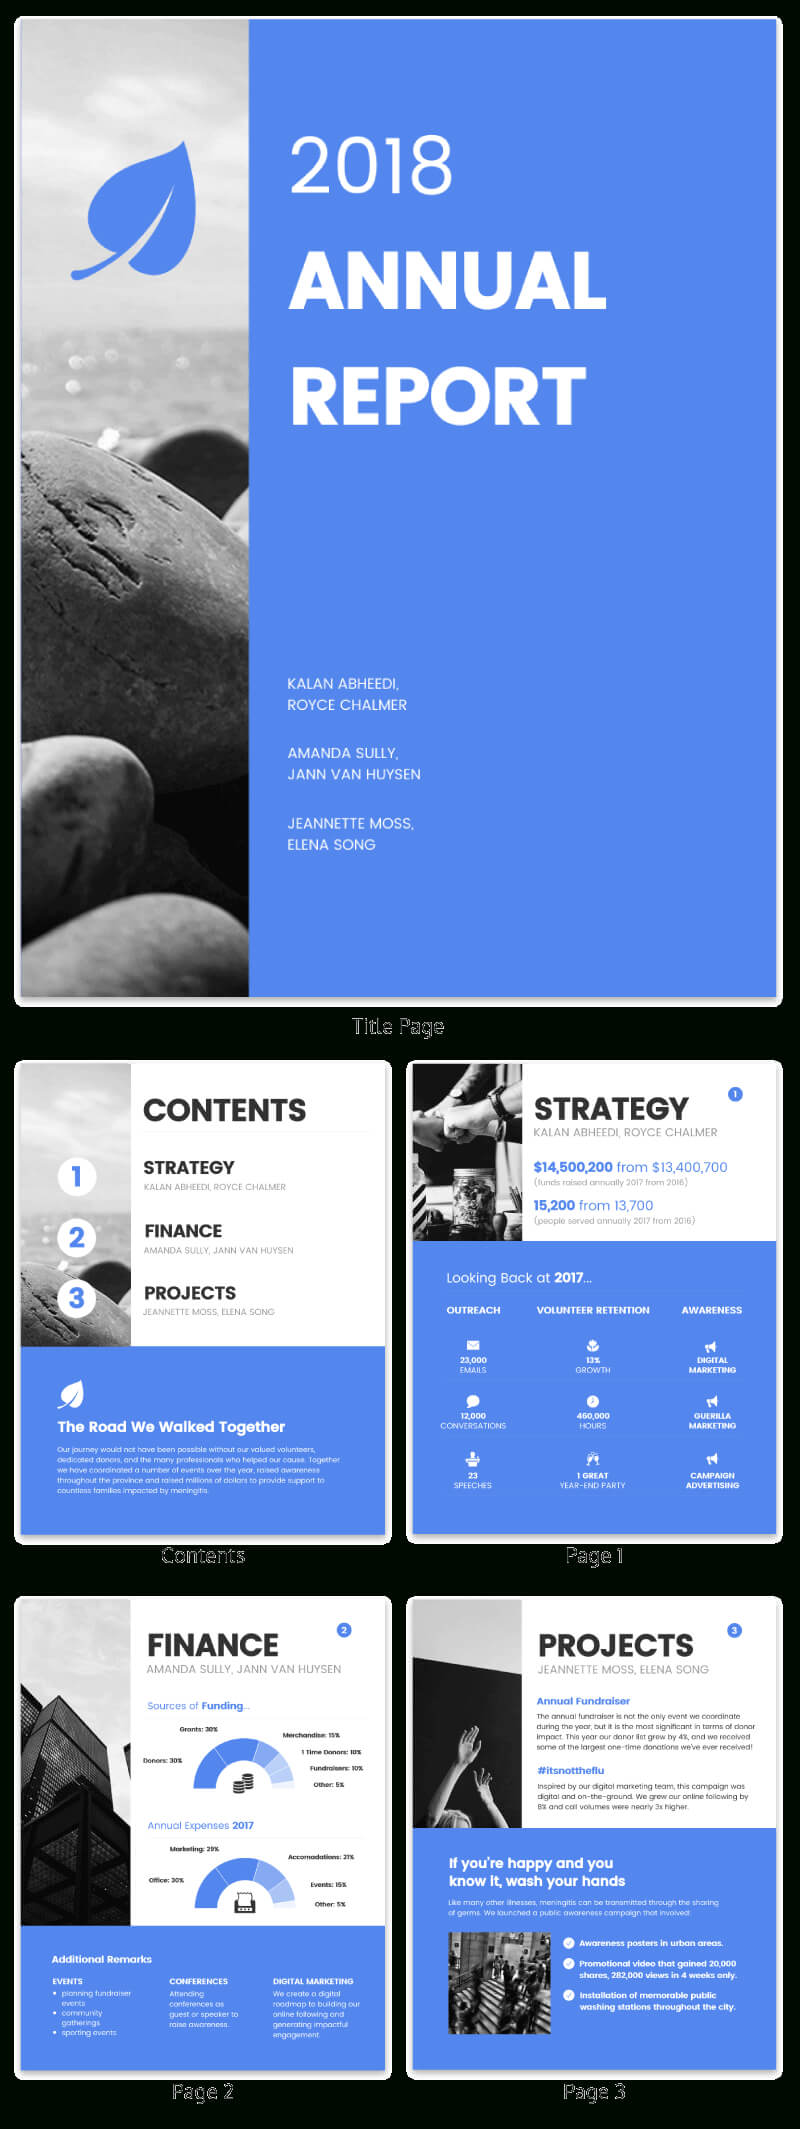 55+ Customizable Annual Report Design Templates, Examples & Tips pertaining to Word Annual Report Template